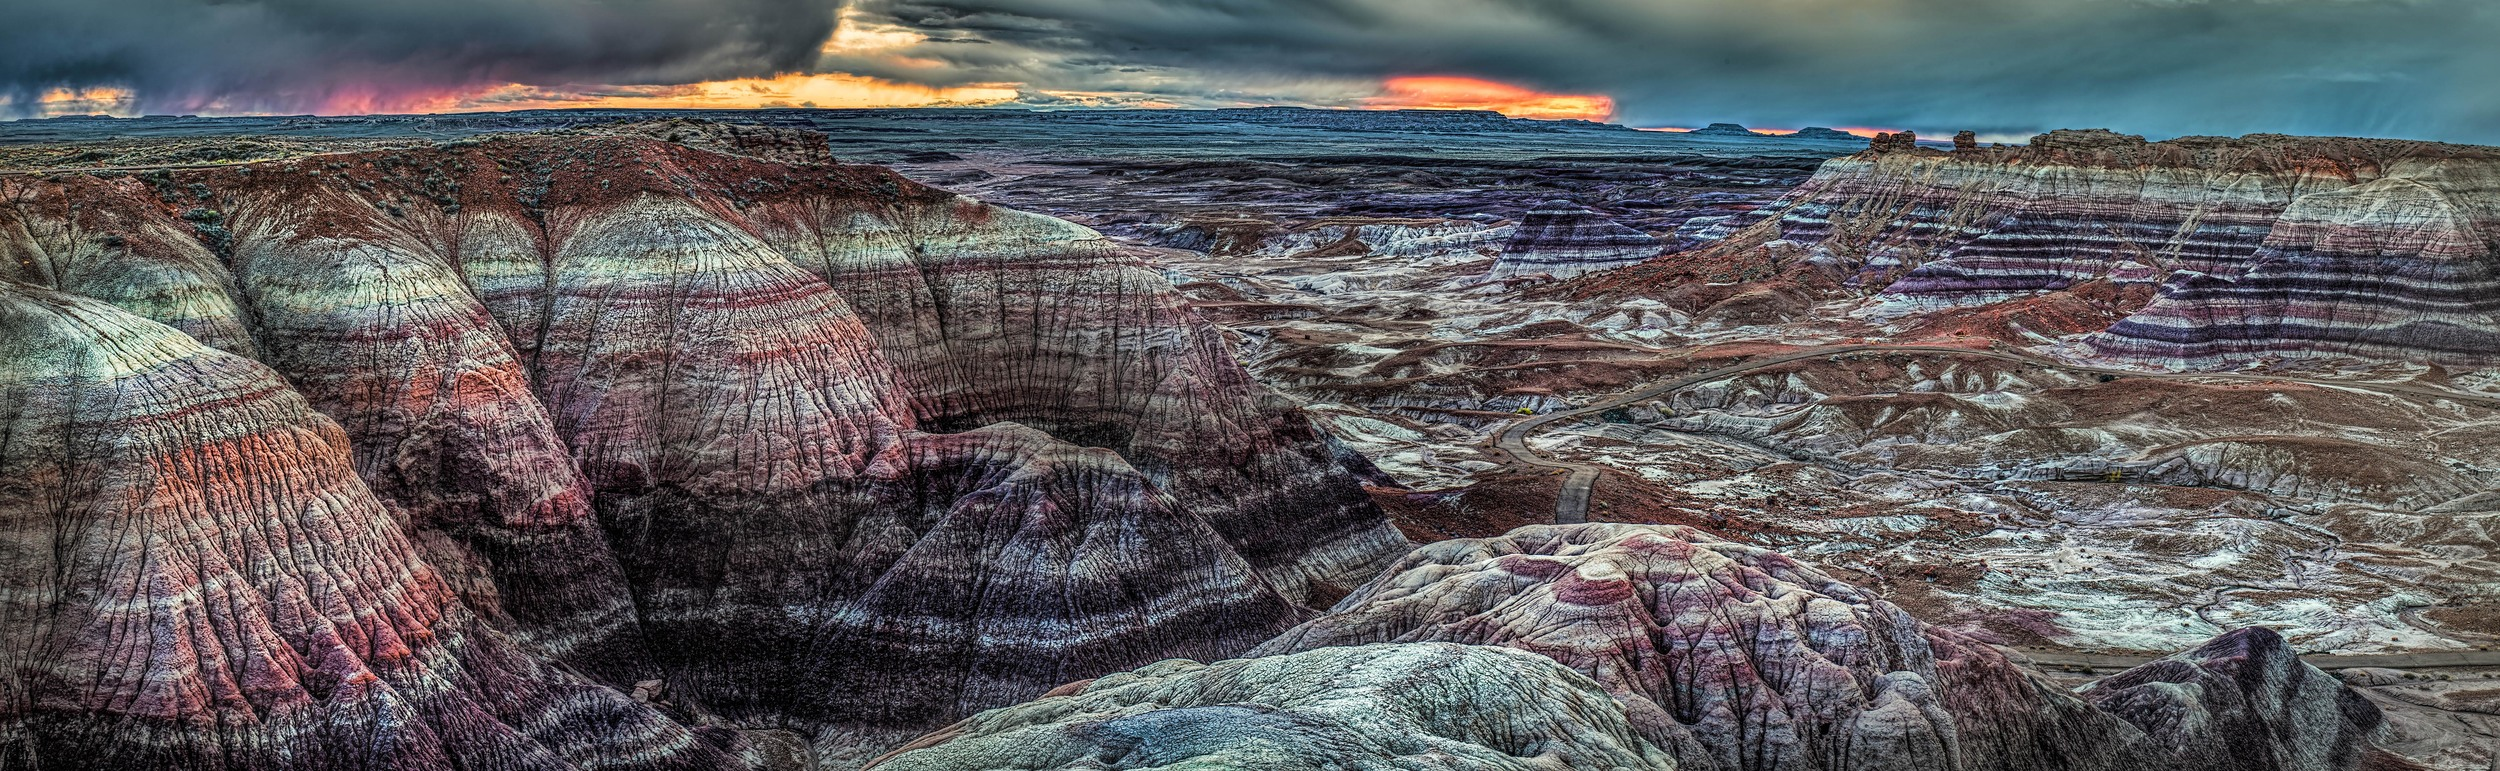 Blue Basin Sunset- Petrified Forest National Park, photo by Andrew Kerns CC / BY